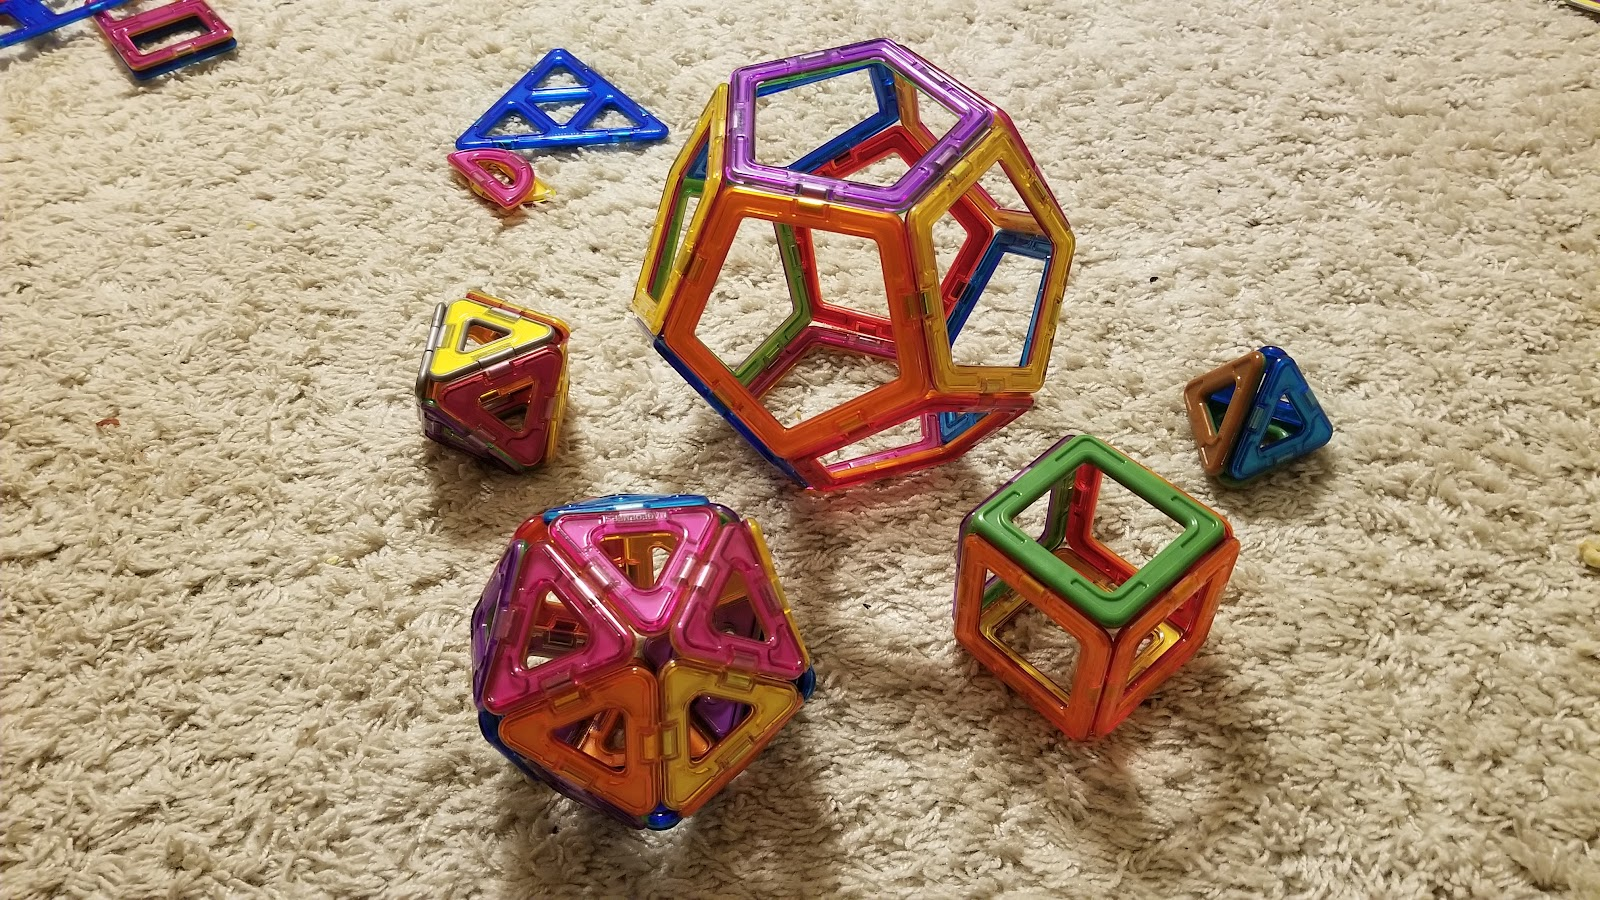 polyhedra of different number of sides built from building magnets